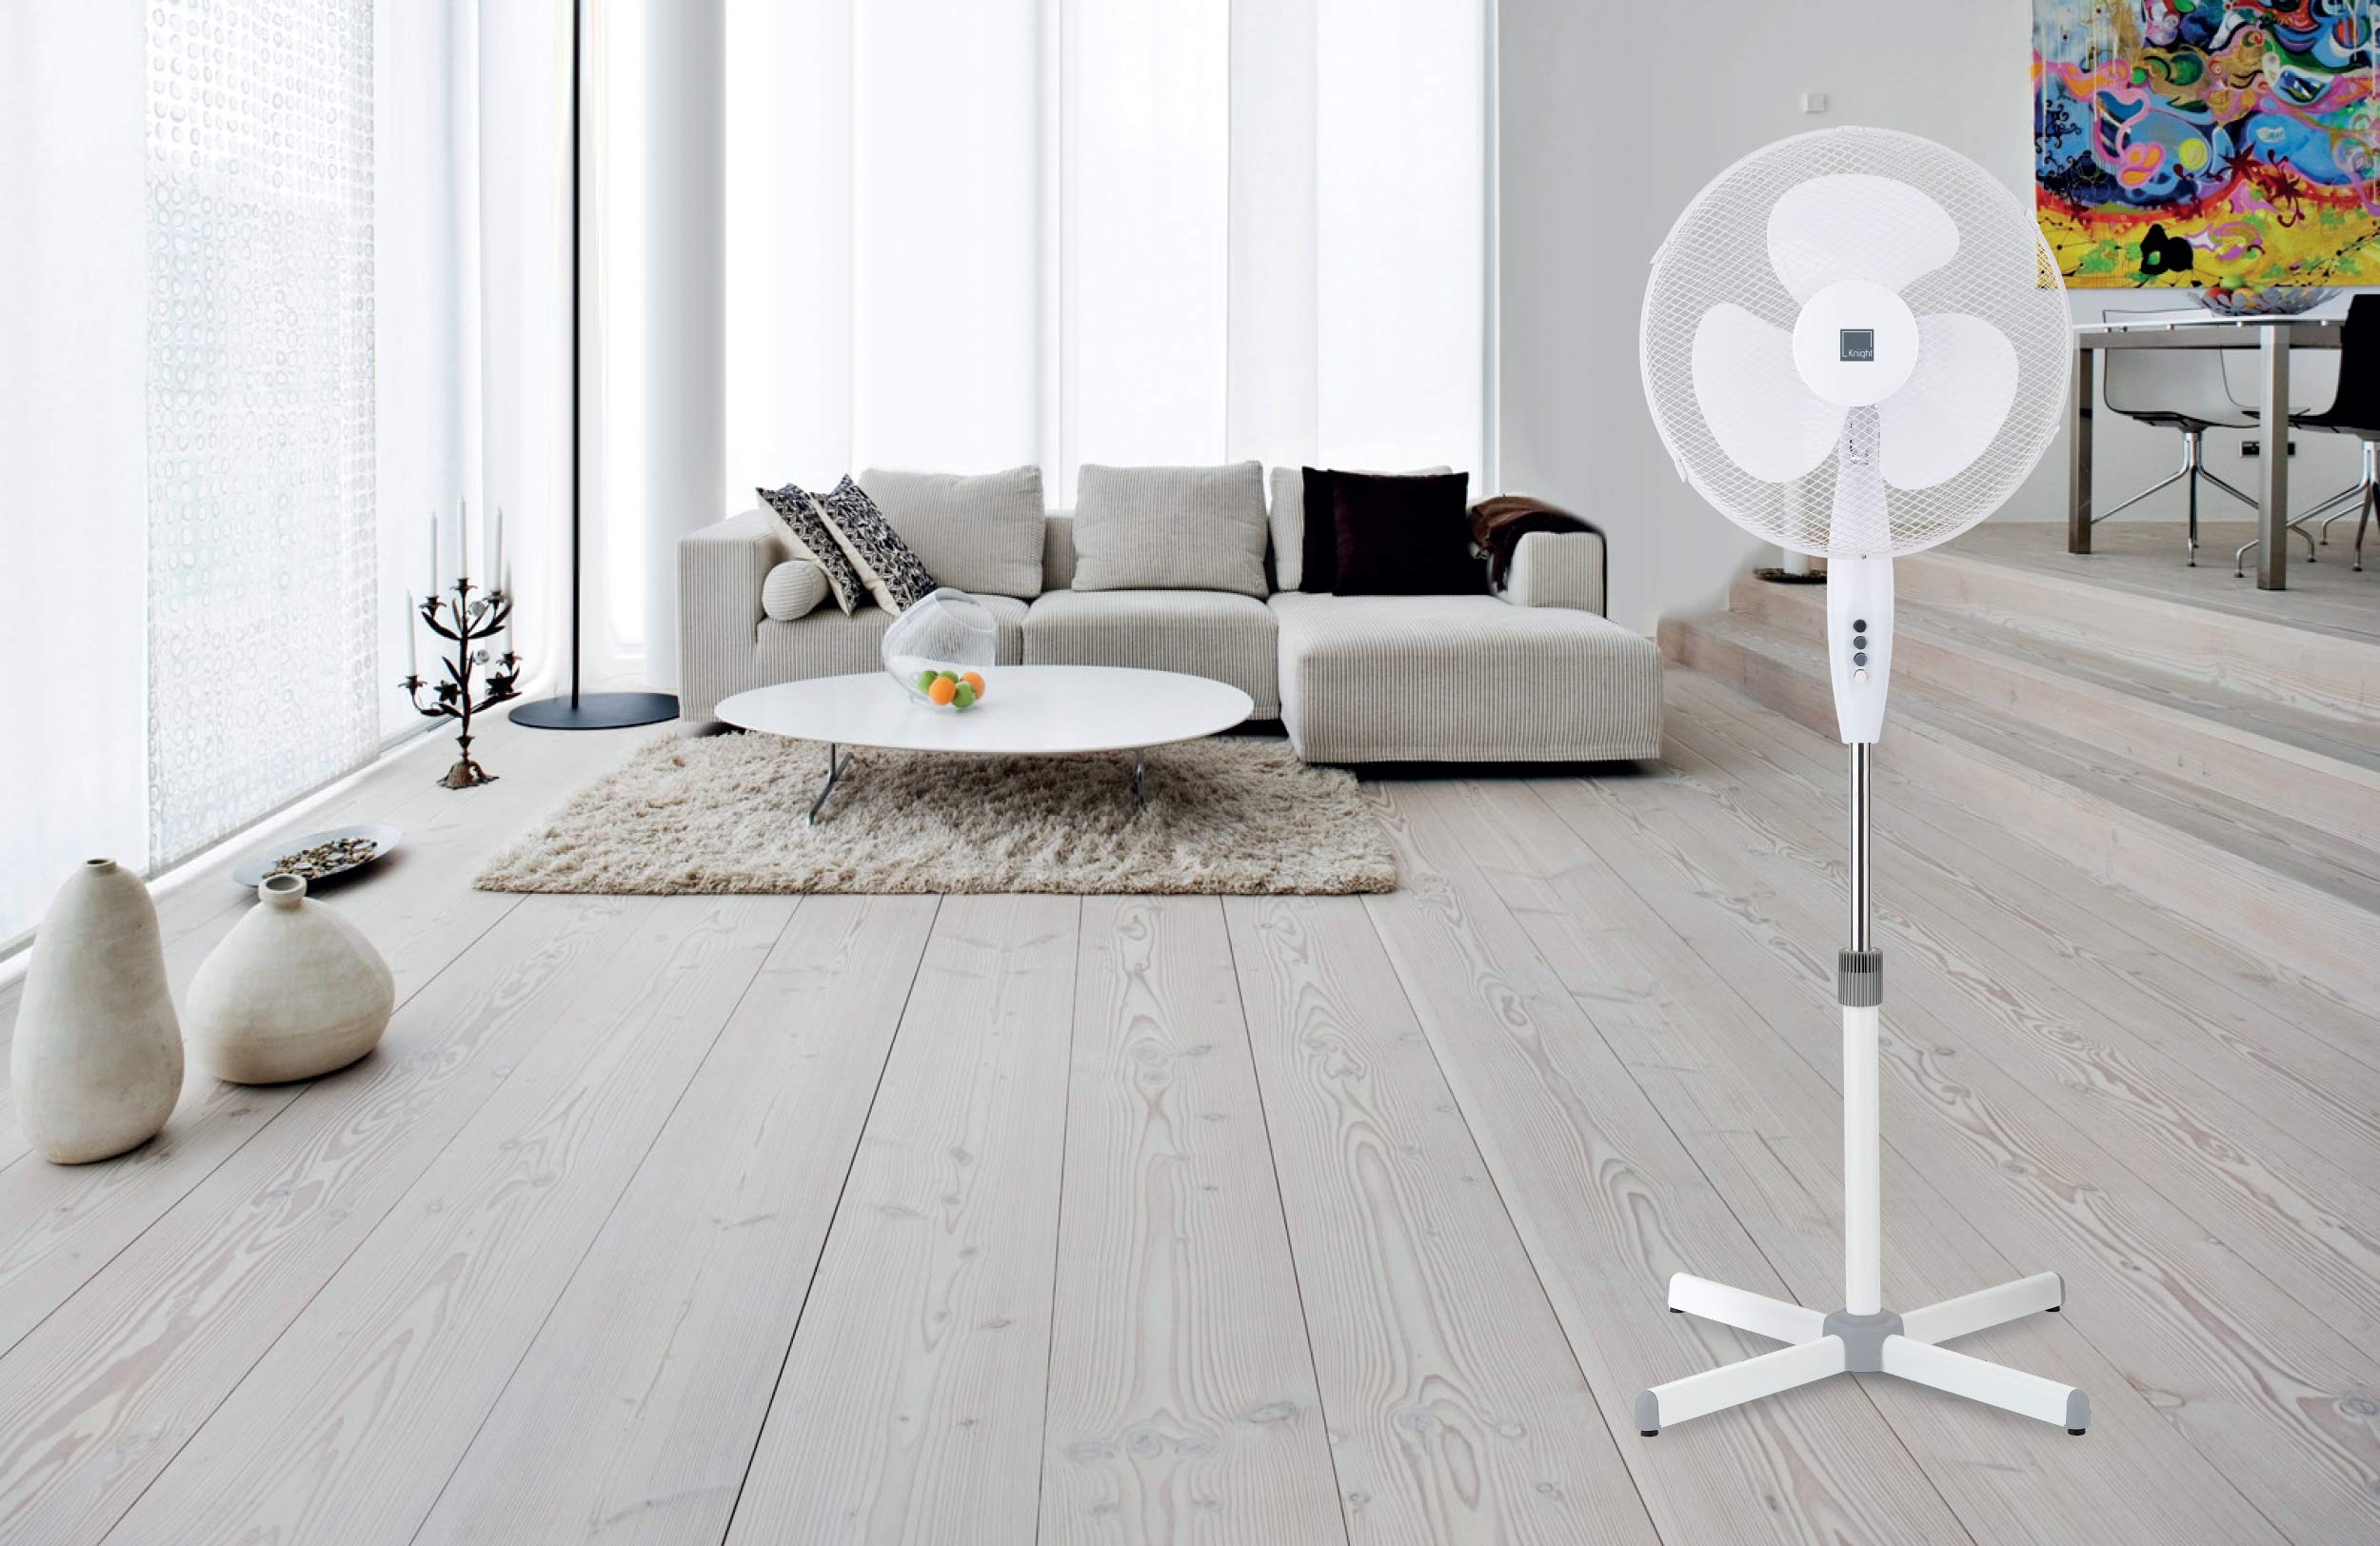 "81L9cZE2bhL - Knight 16"" Fan Pedestal Stand High Performance 140cm Adjustable Height, 3 Speed Setting, Extra Wide Cross Base, Oscillating, Tilting Head (White)"